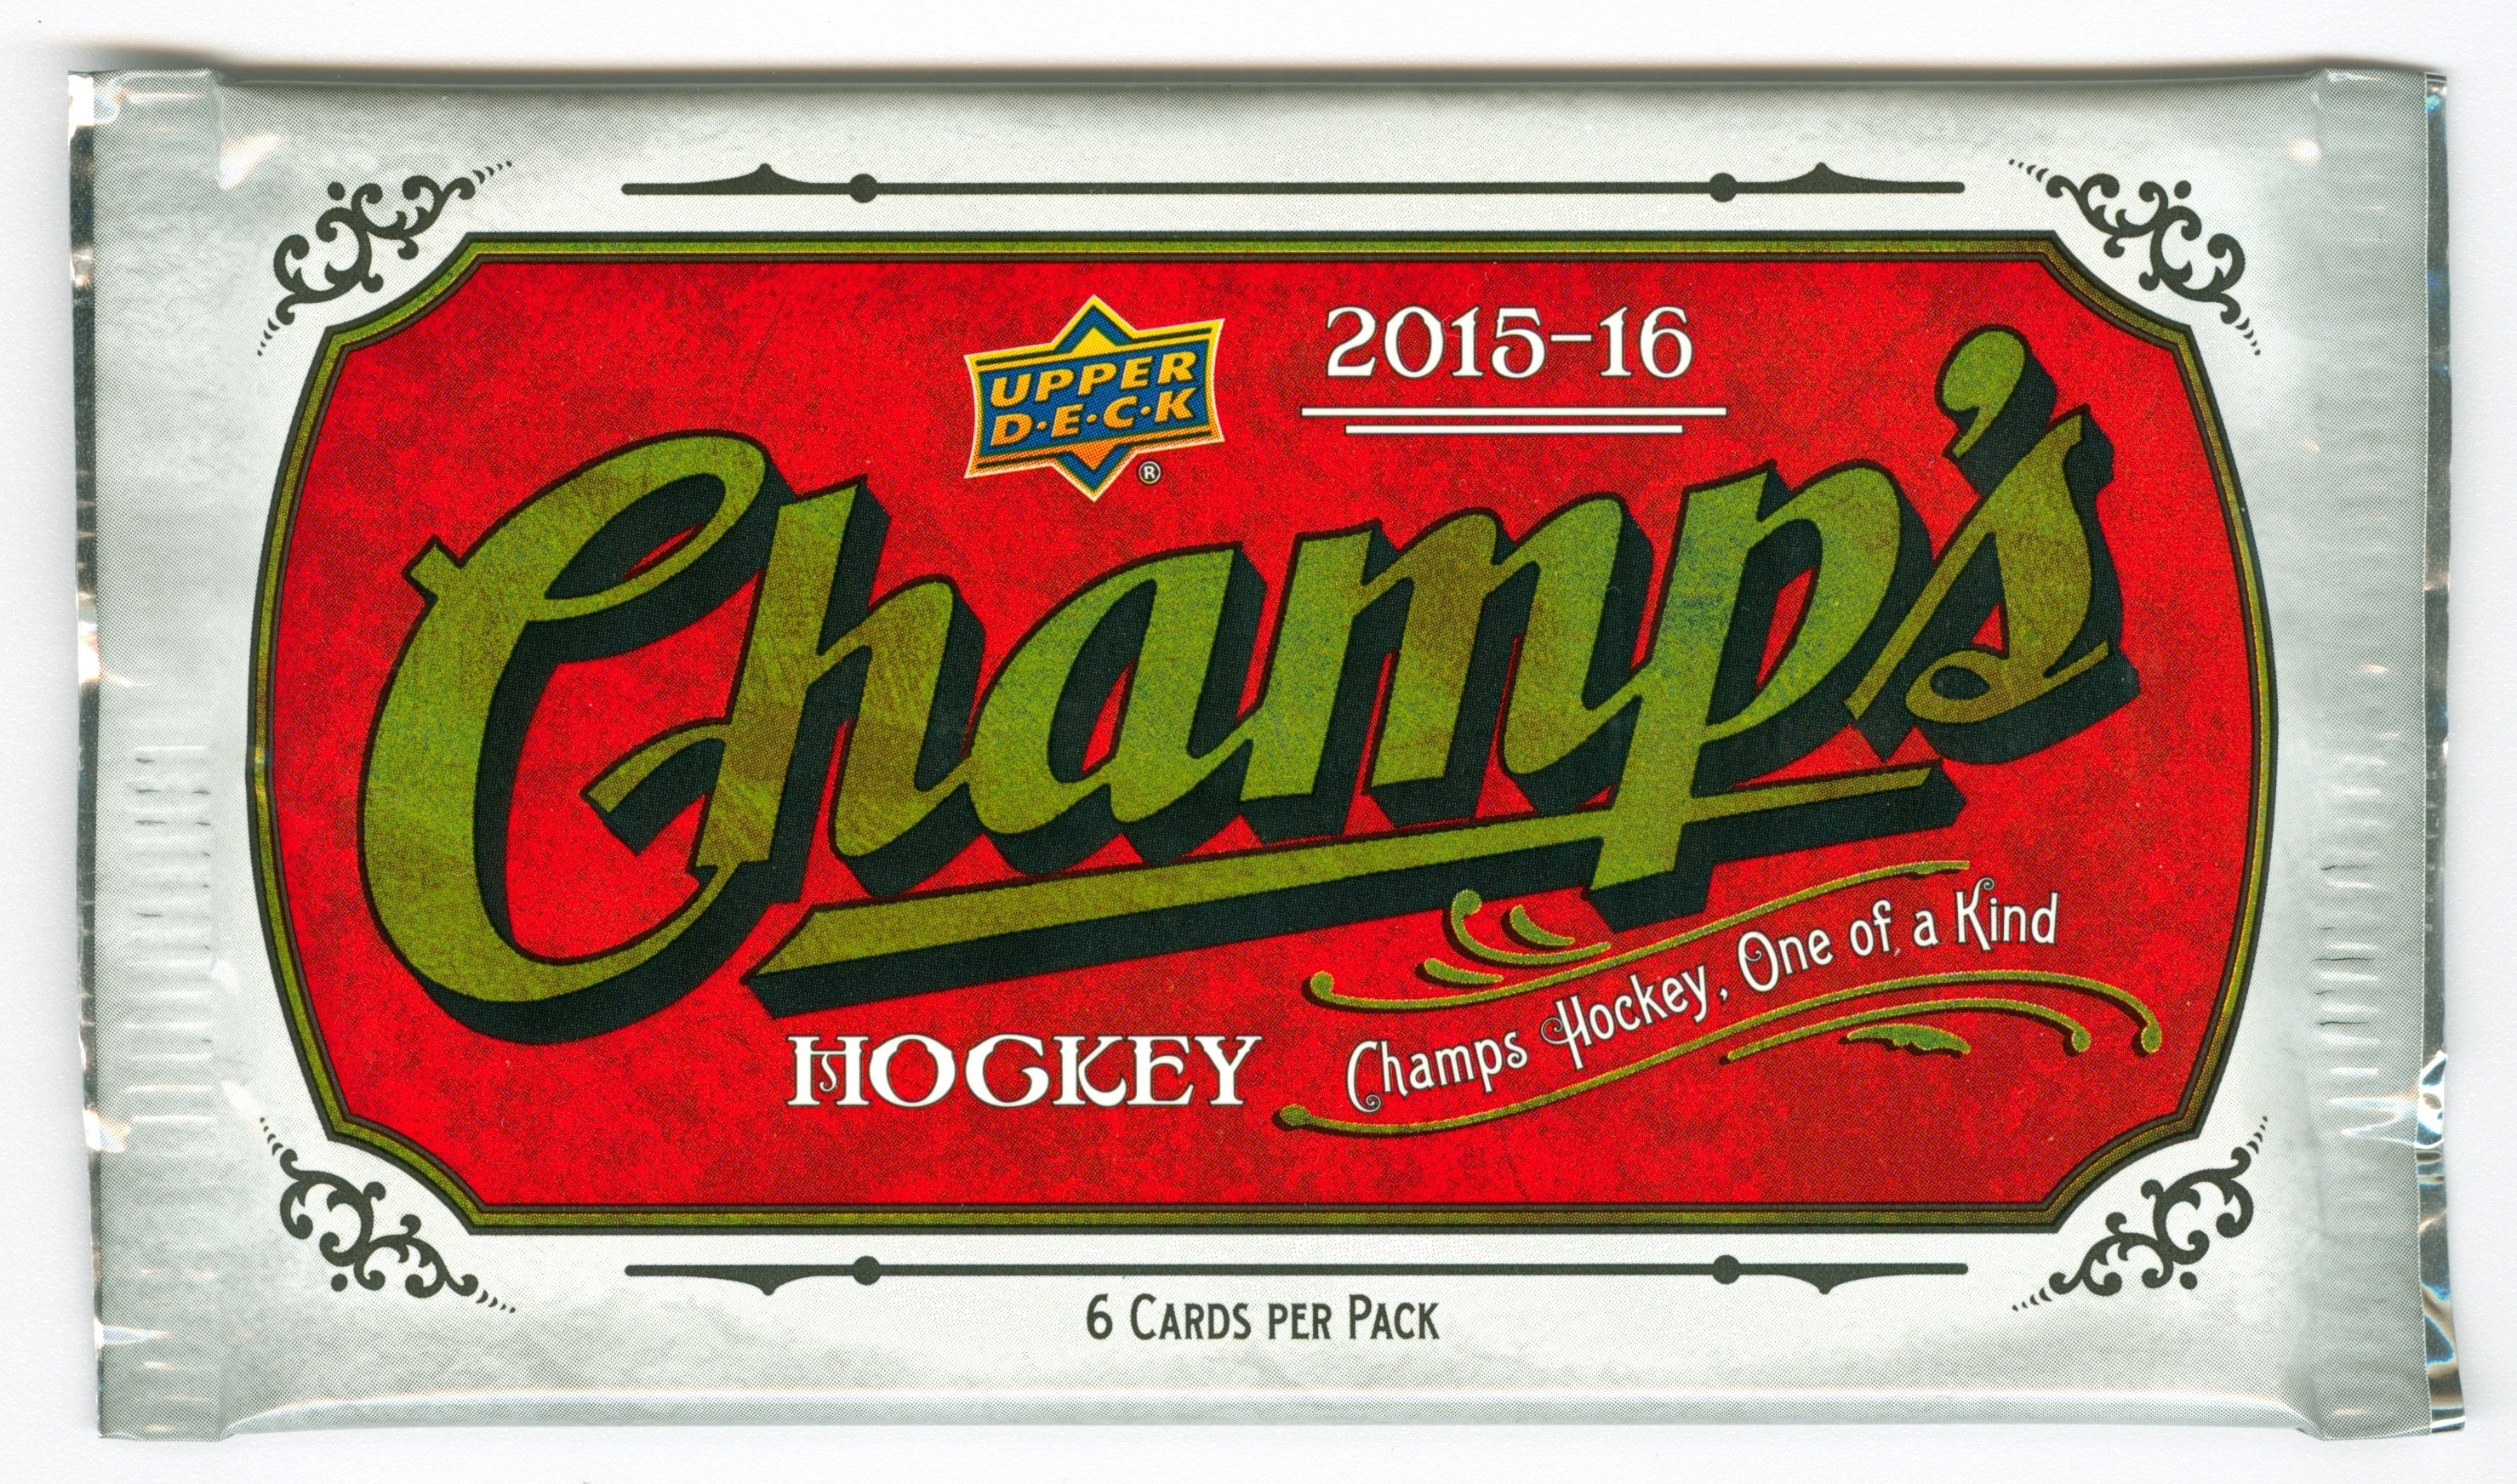 2015-16 Upper Deck Champ's Hockey Hobby Pack | Eastridge Sports Cards